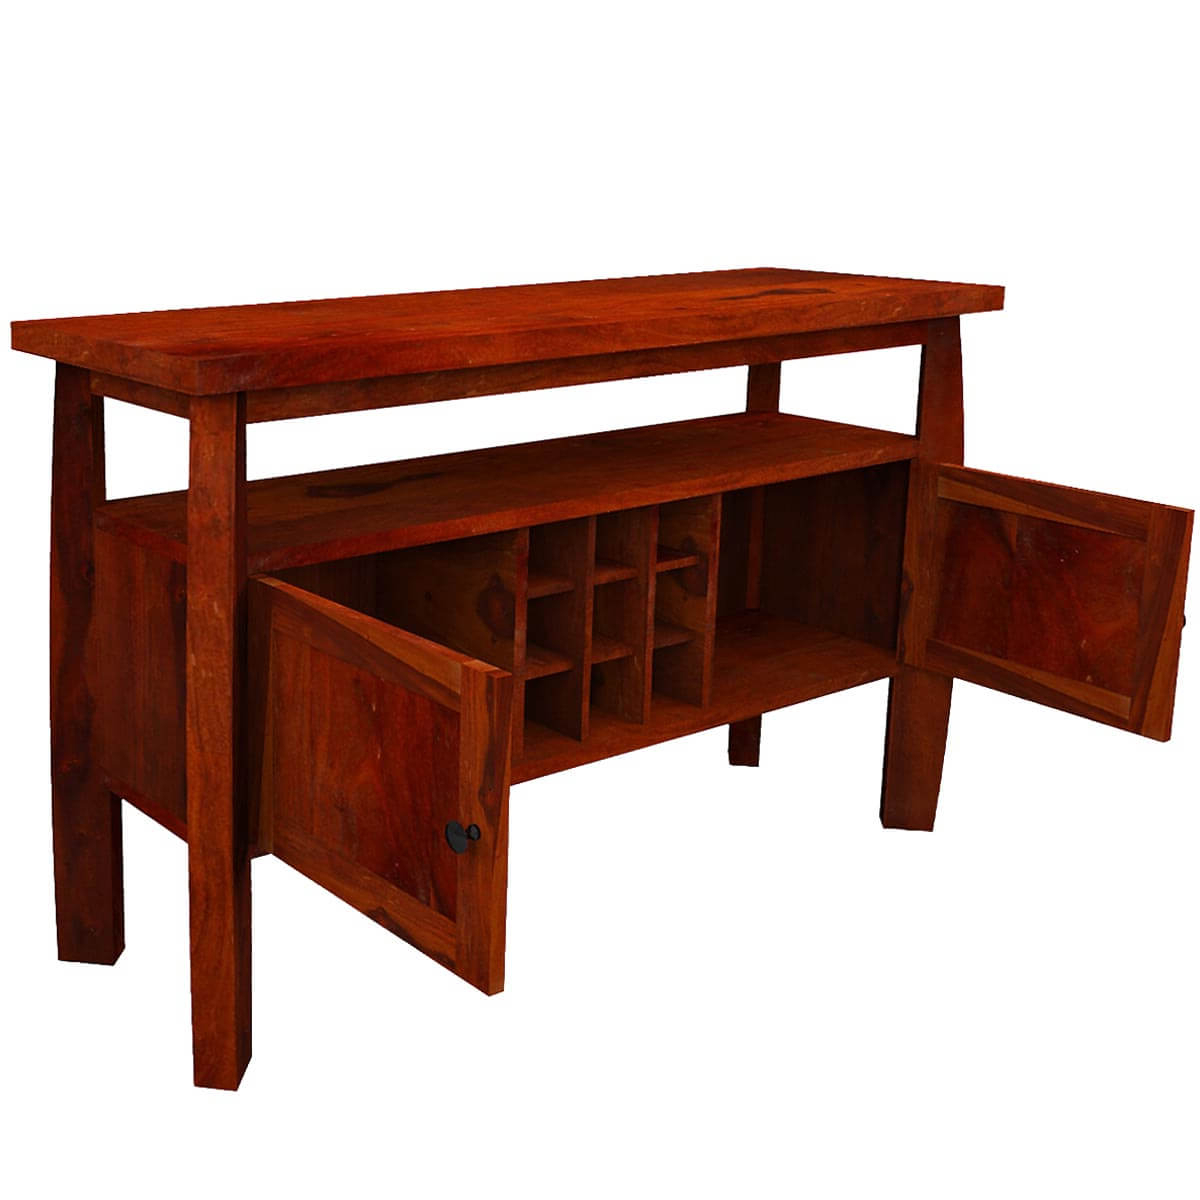 Contemporary Solid Wood Standing Wine Bar Rustic Buffet Table With Regard To Contemporary Wine Bar Buffets (View 12 of 20)